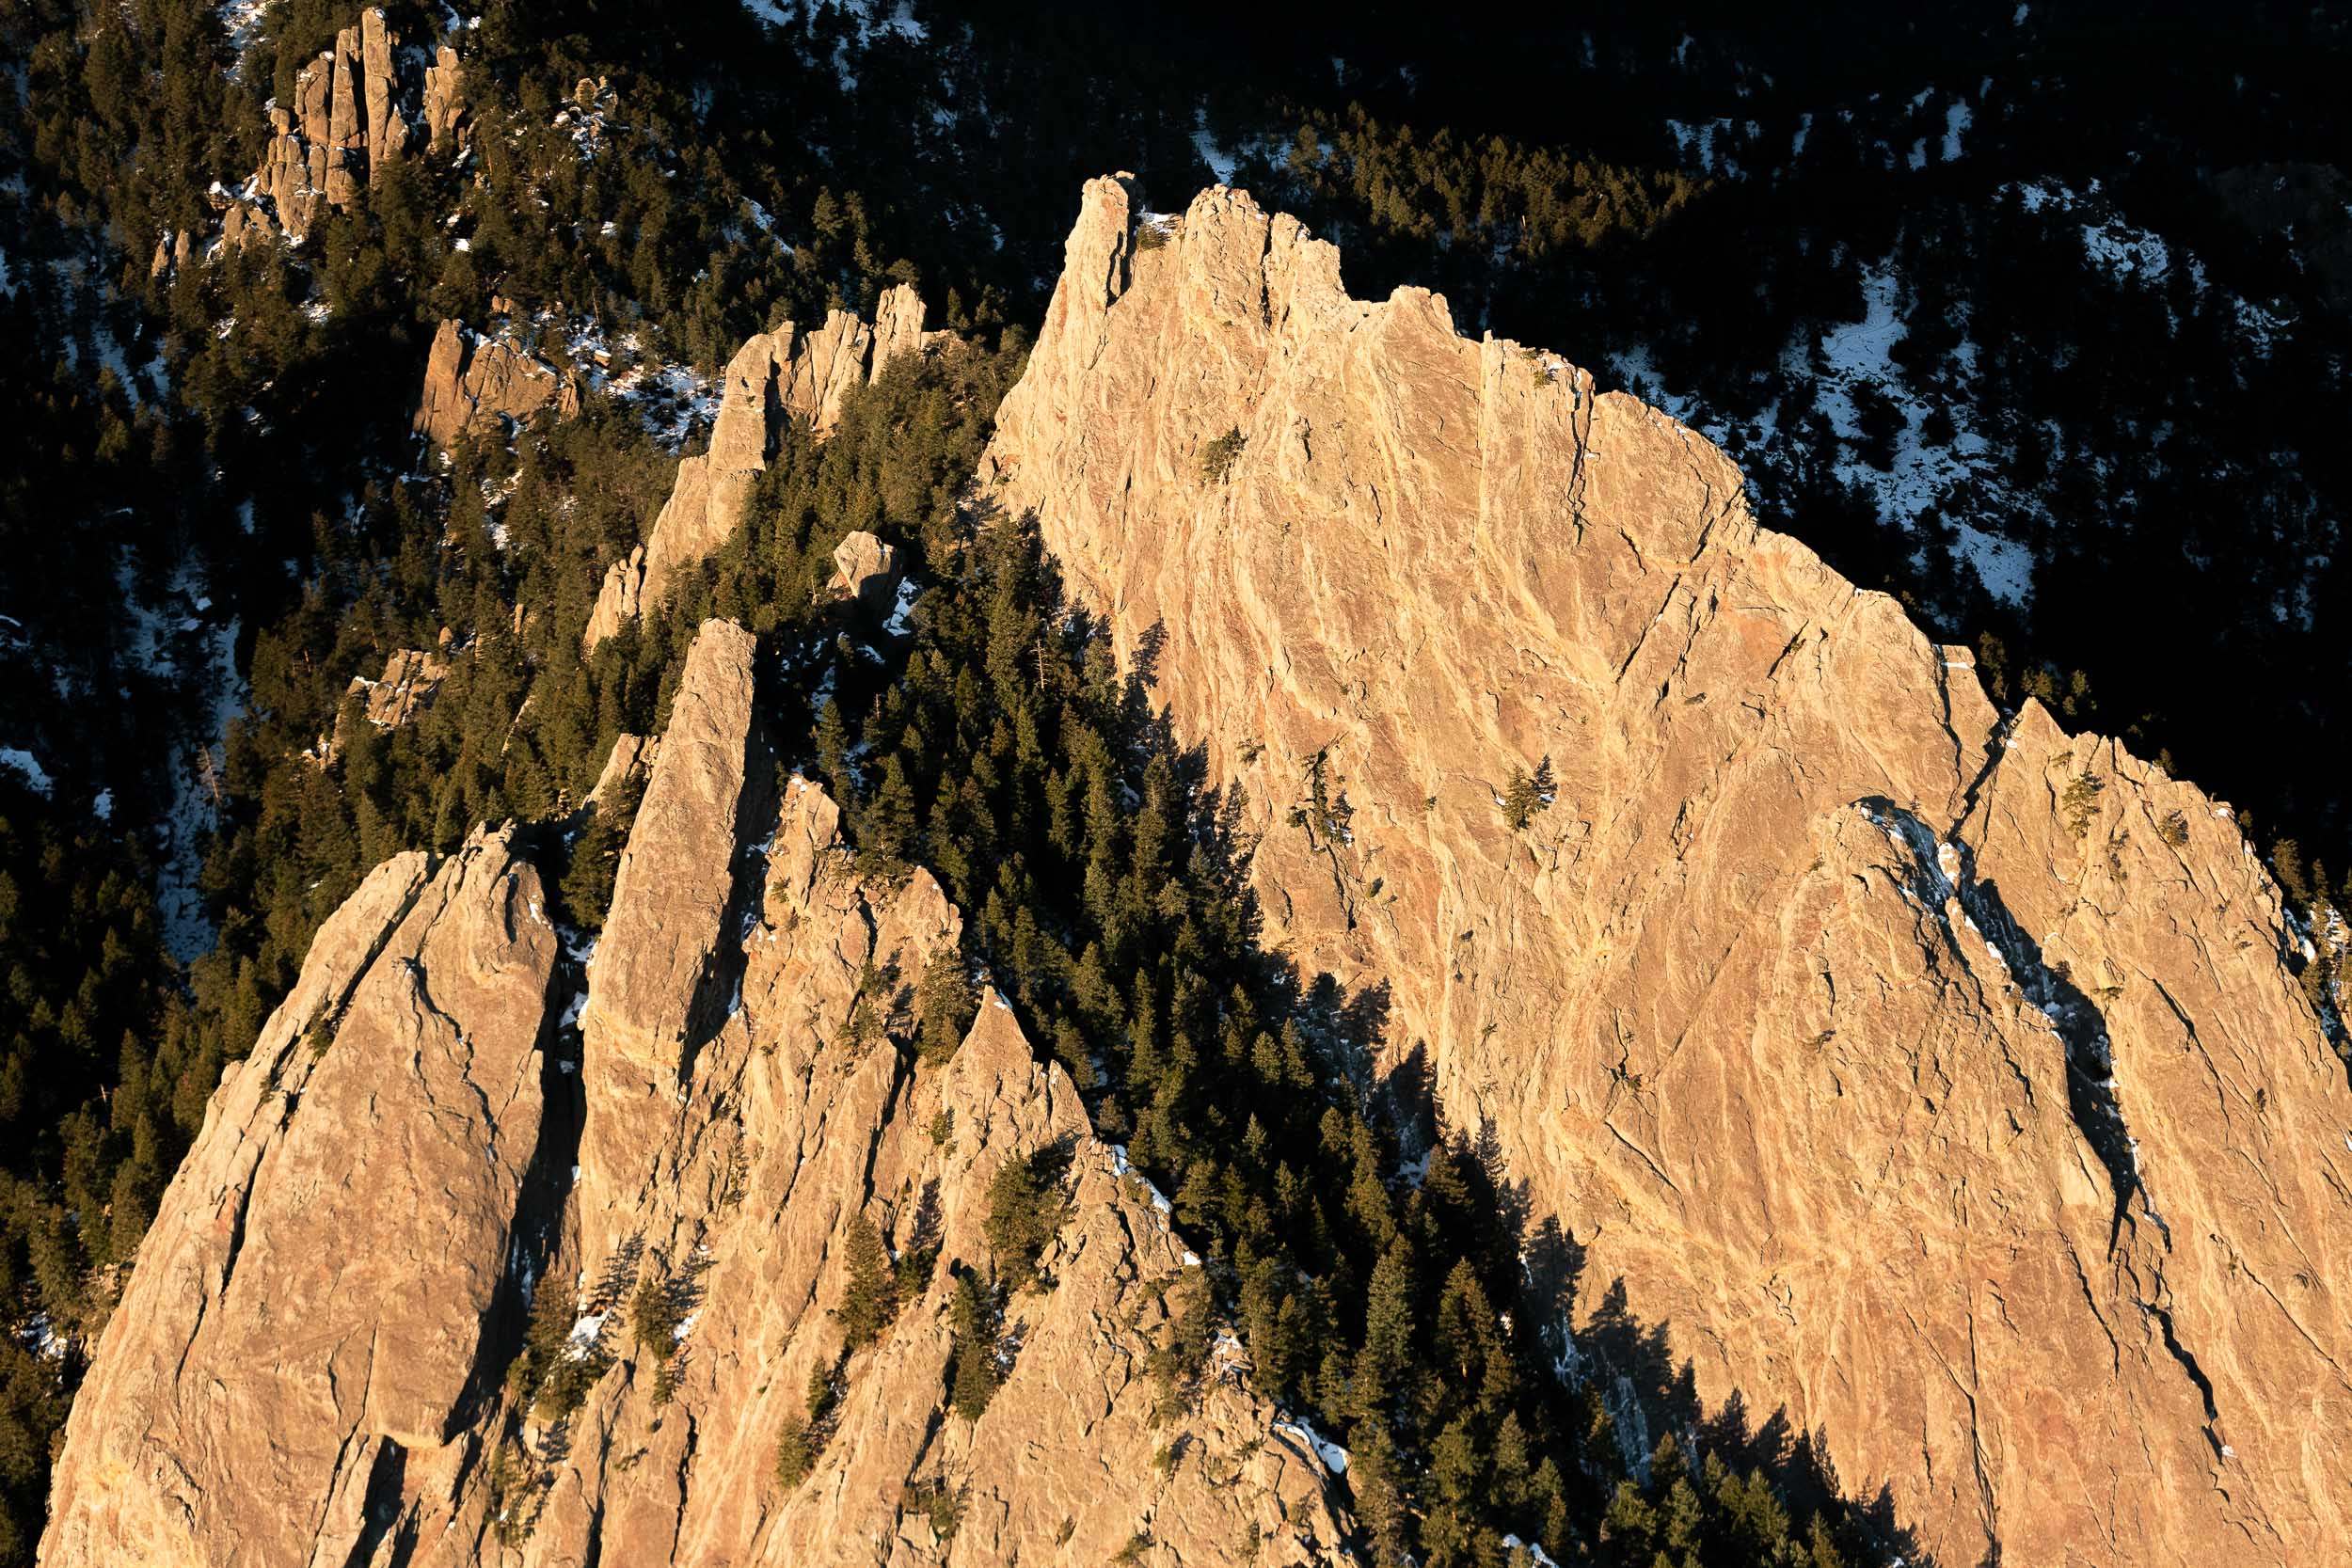 An aerial photograph of the first and second Flatiron rock formation in Boulder, Colorado in the Rocky Mountains on a cold, snowy winter morning just after sunrise.